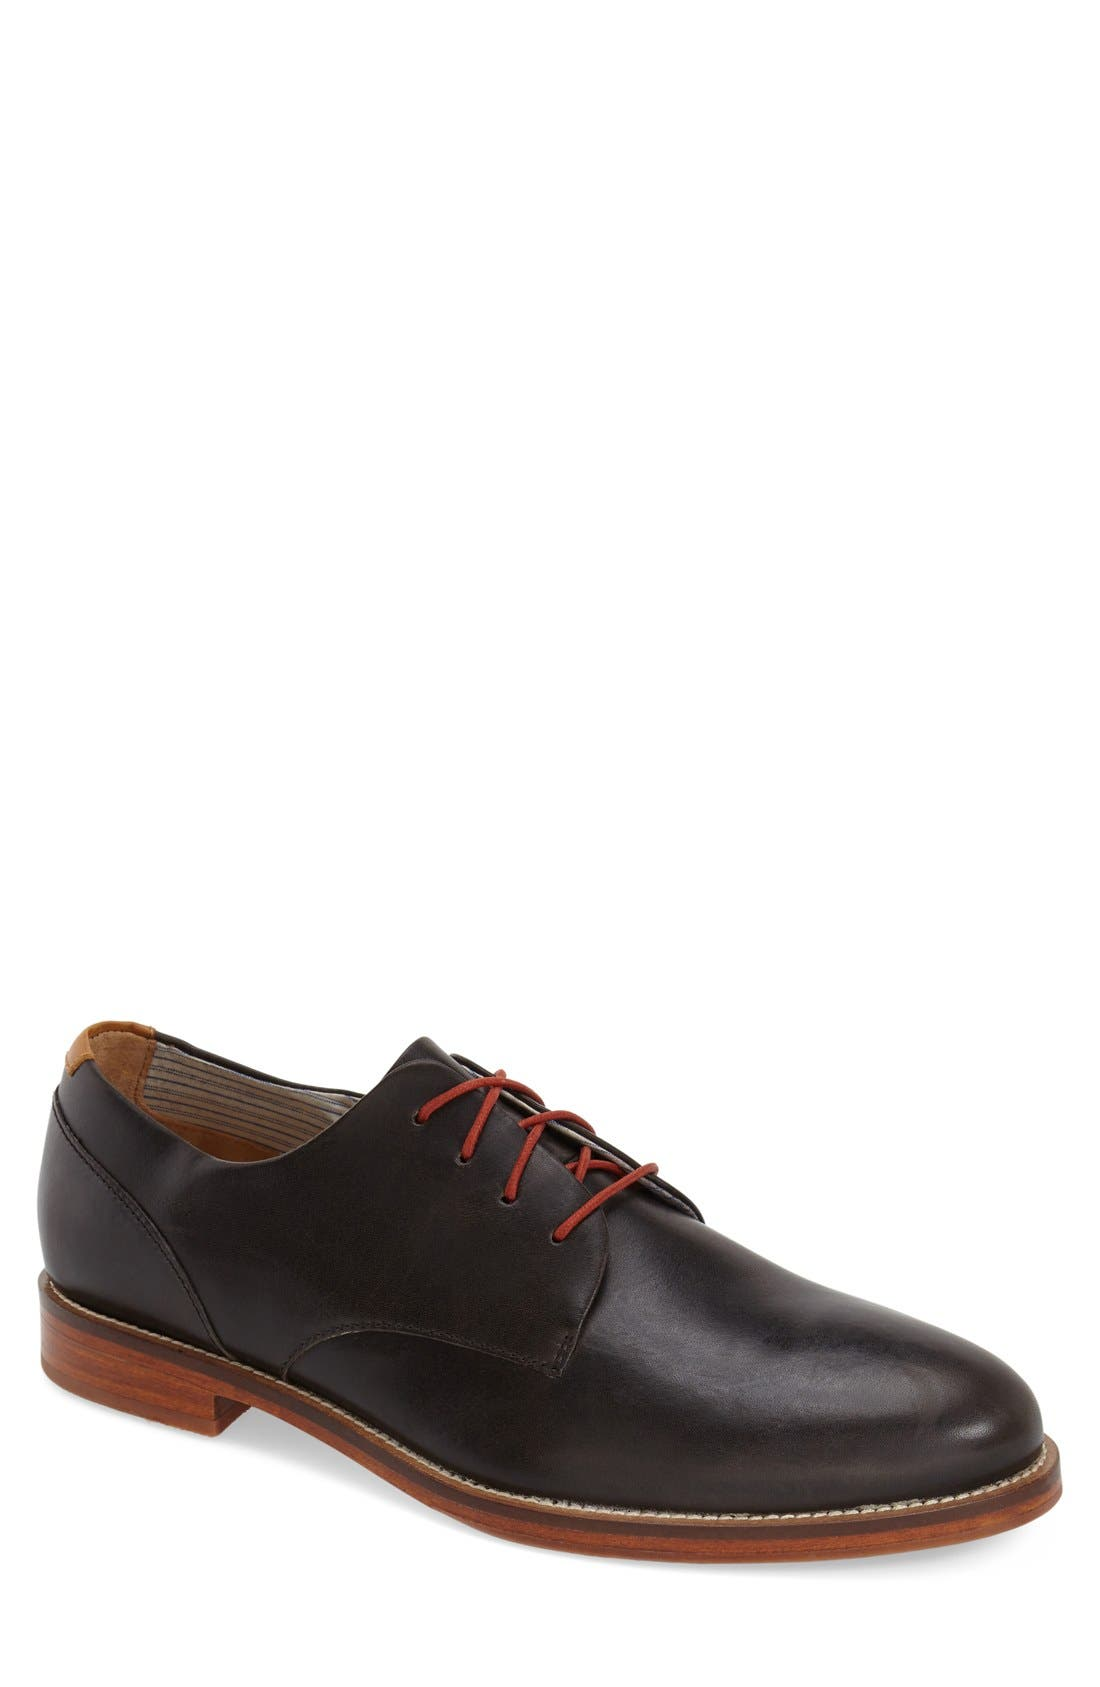 'William Plus' Plain Toe Derby,                             Main thumbnail 1, color,                             019